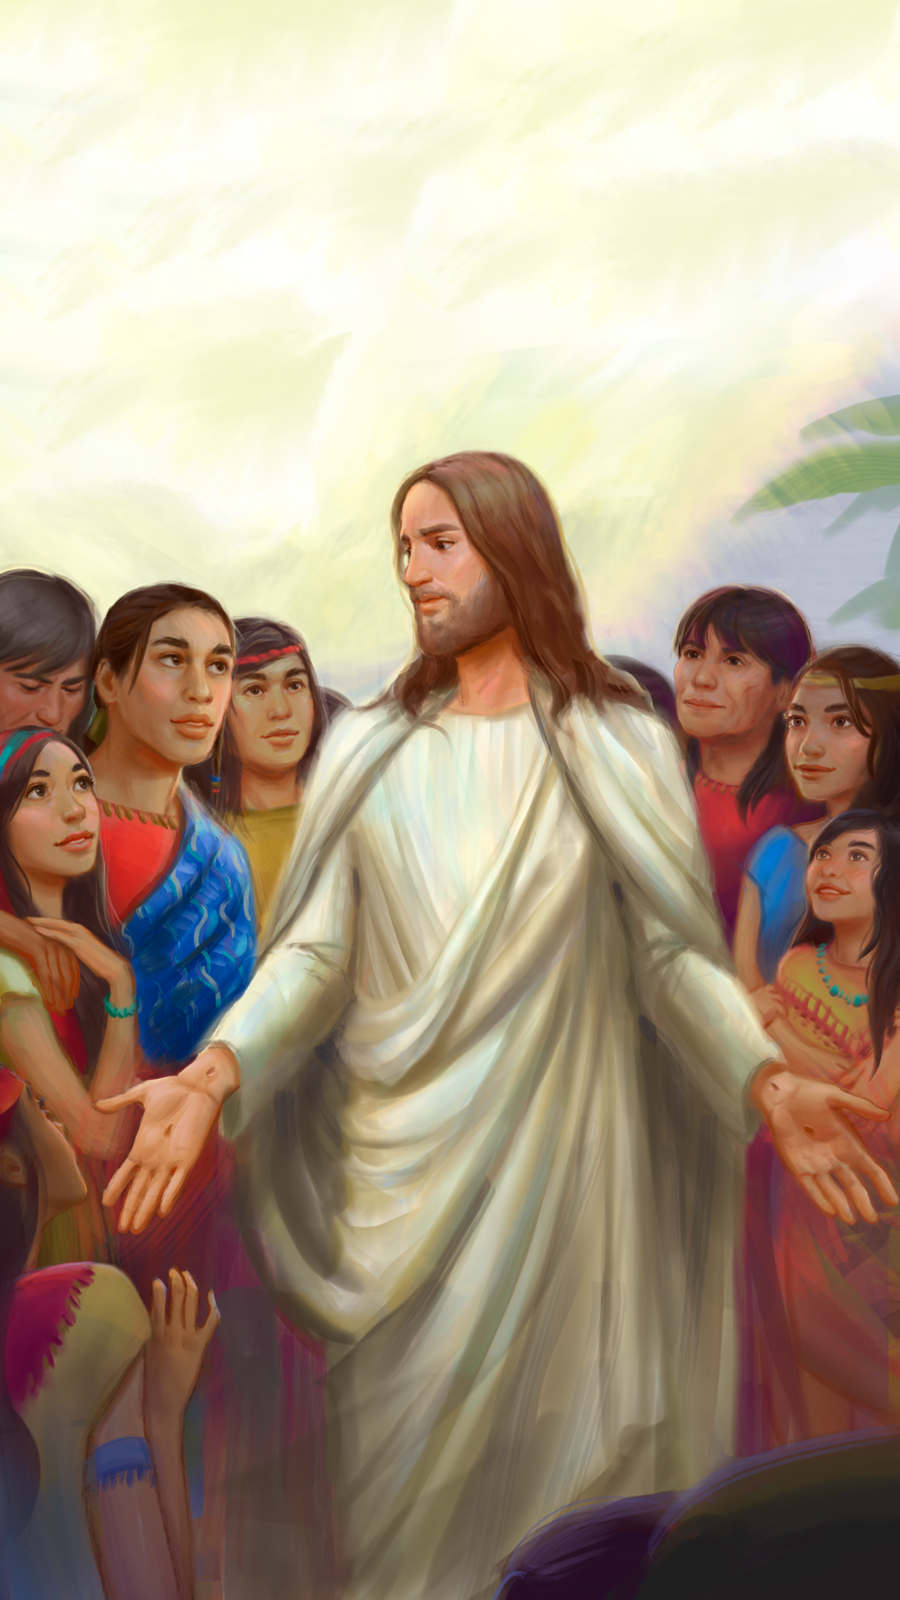 An illustration of the resurrected Jesus Christ standing among the Nephites.